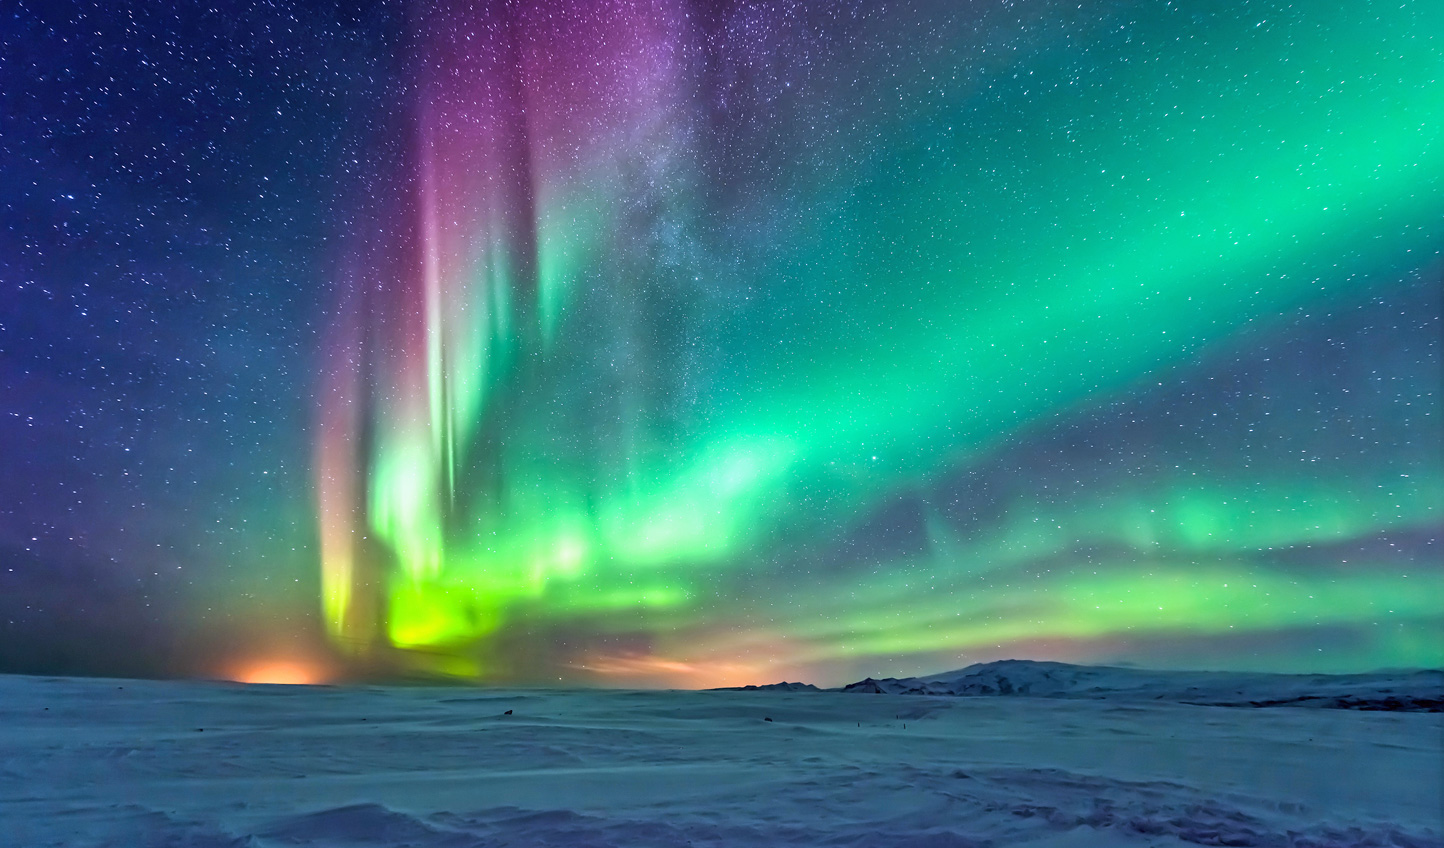 Visit in the winter and see the Northern Lights blaze overhead